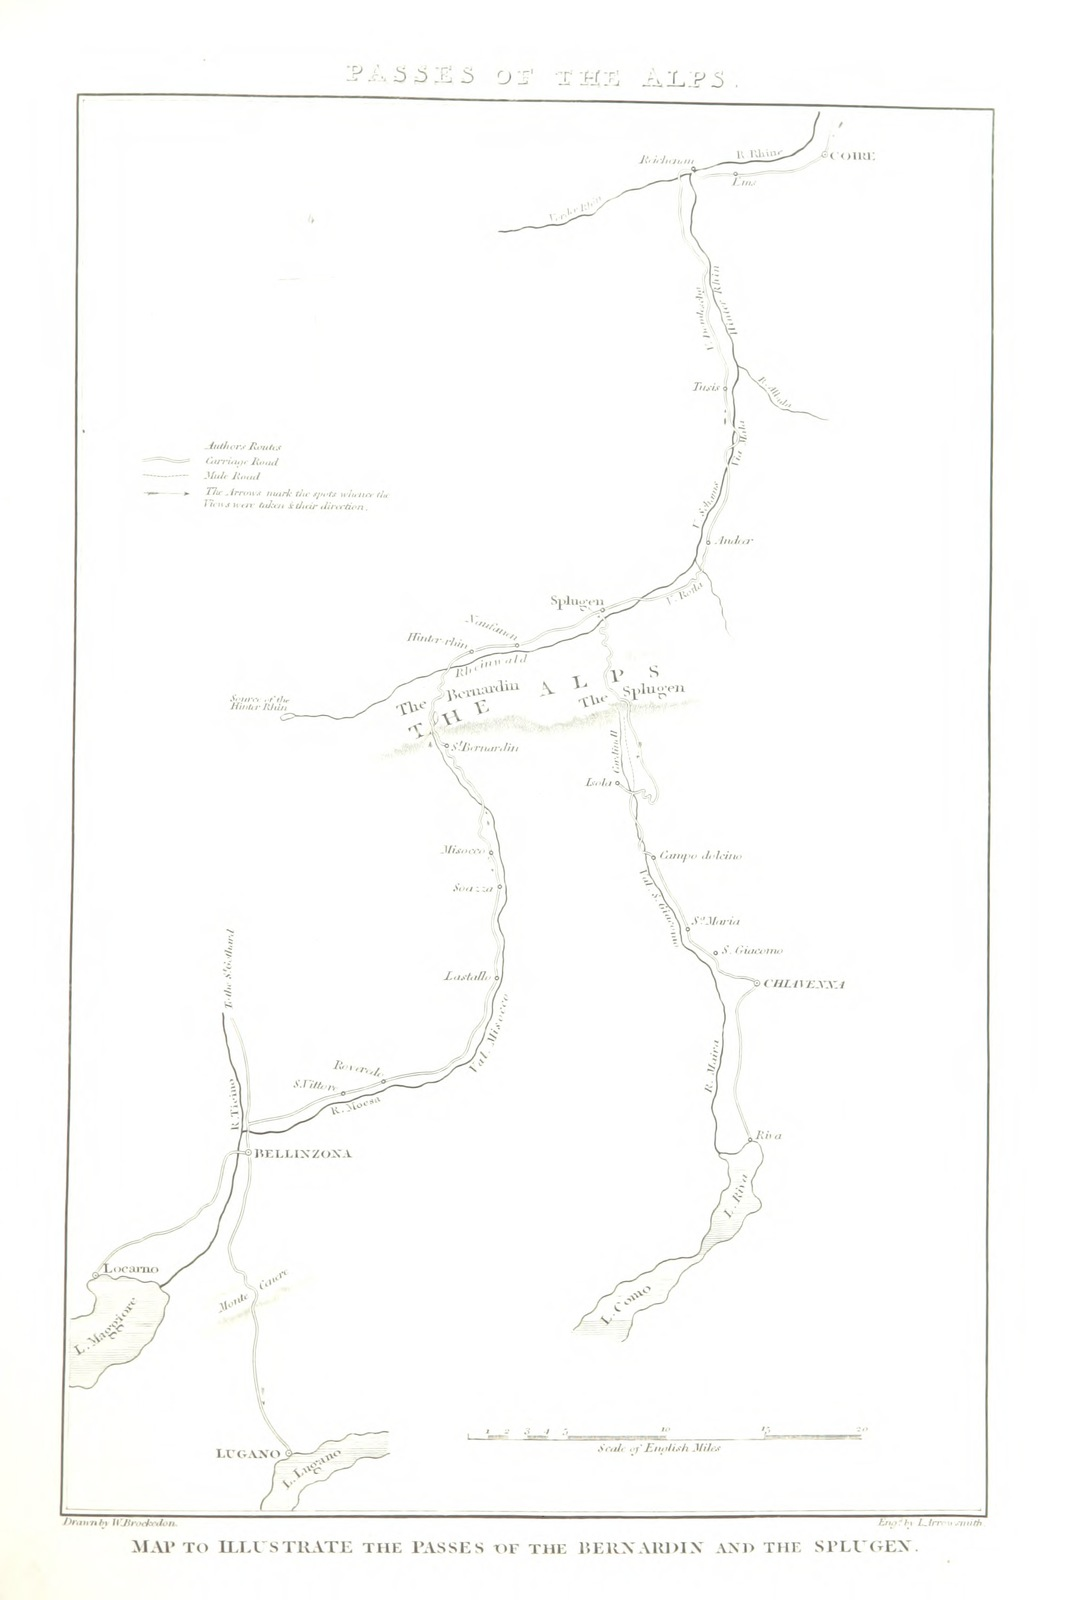 Map Of France Switzerland And Italy.Map From Illustrations Of The Passes Of The Alps By Which Italy